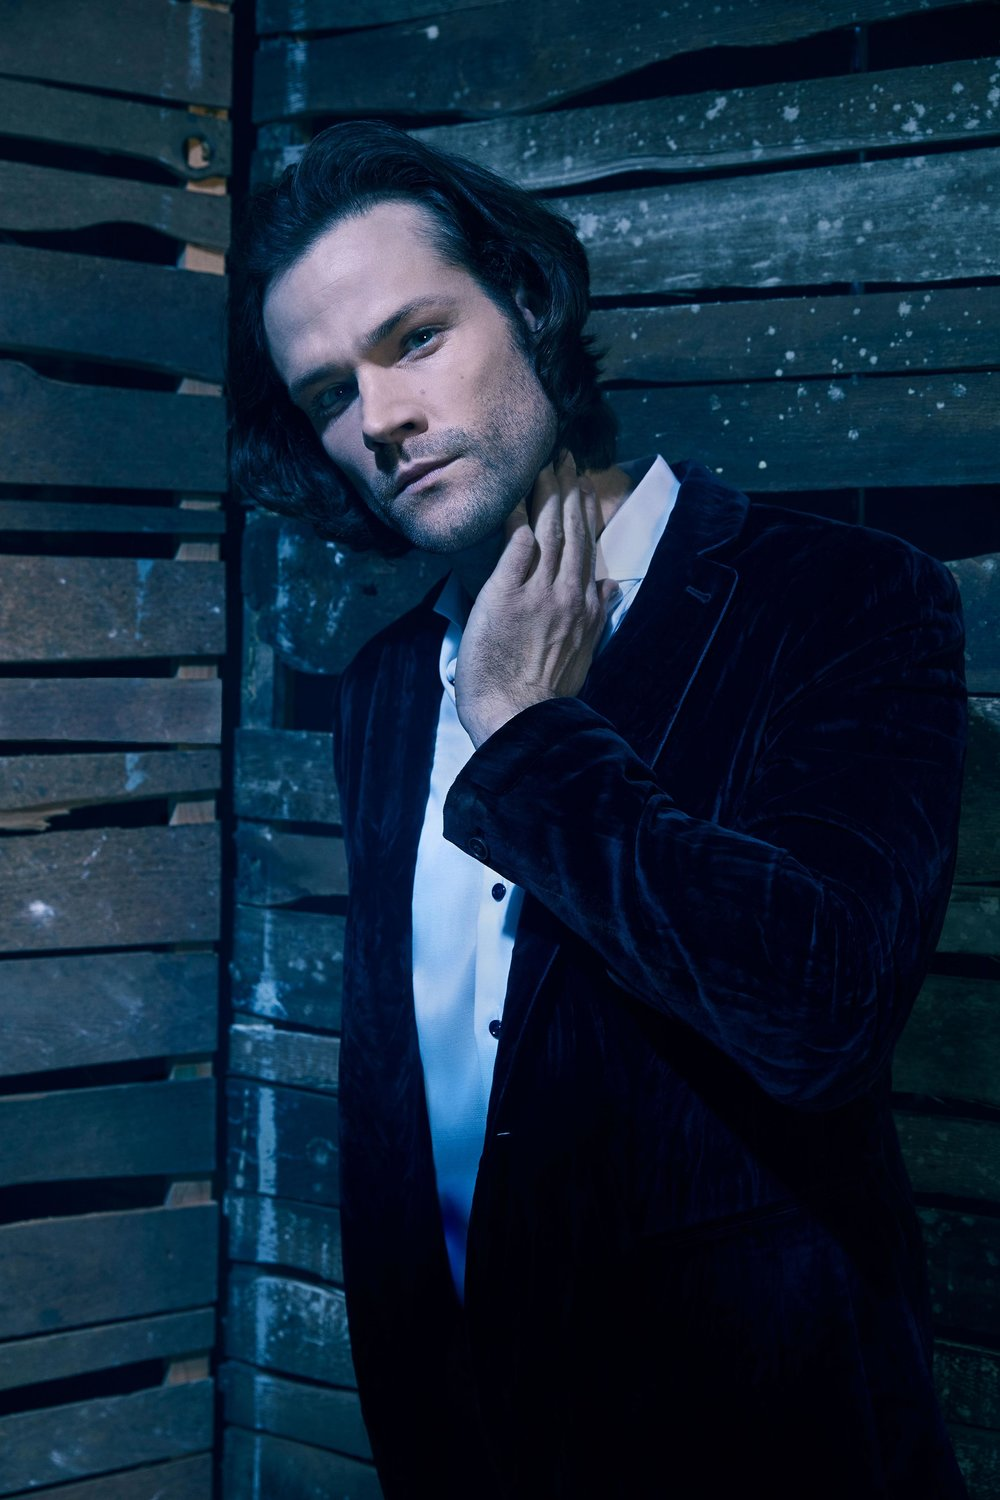 2019_01_09_EW_Supernatural_Jared_slats_0934-3_Web.jpg